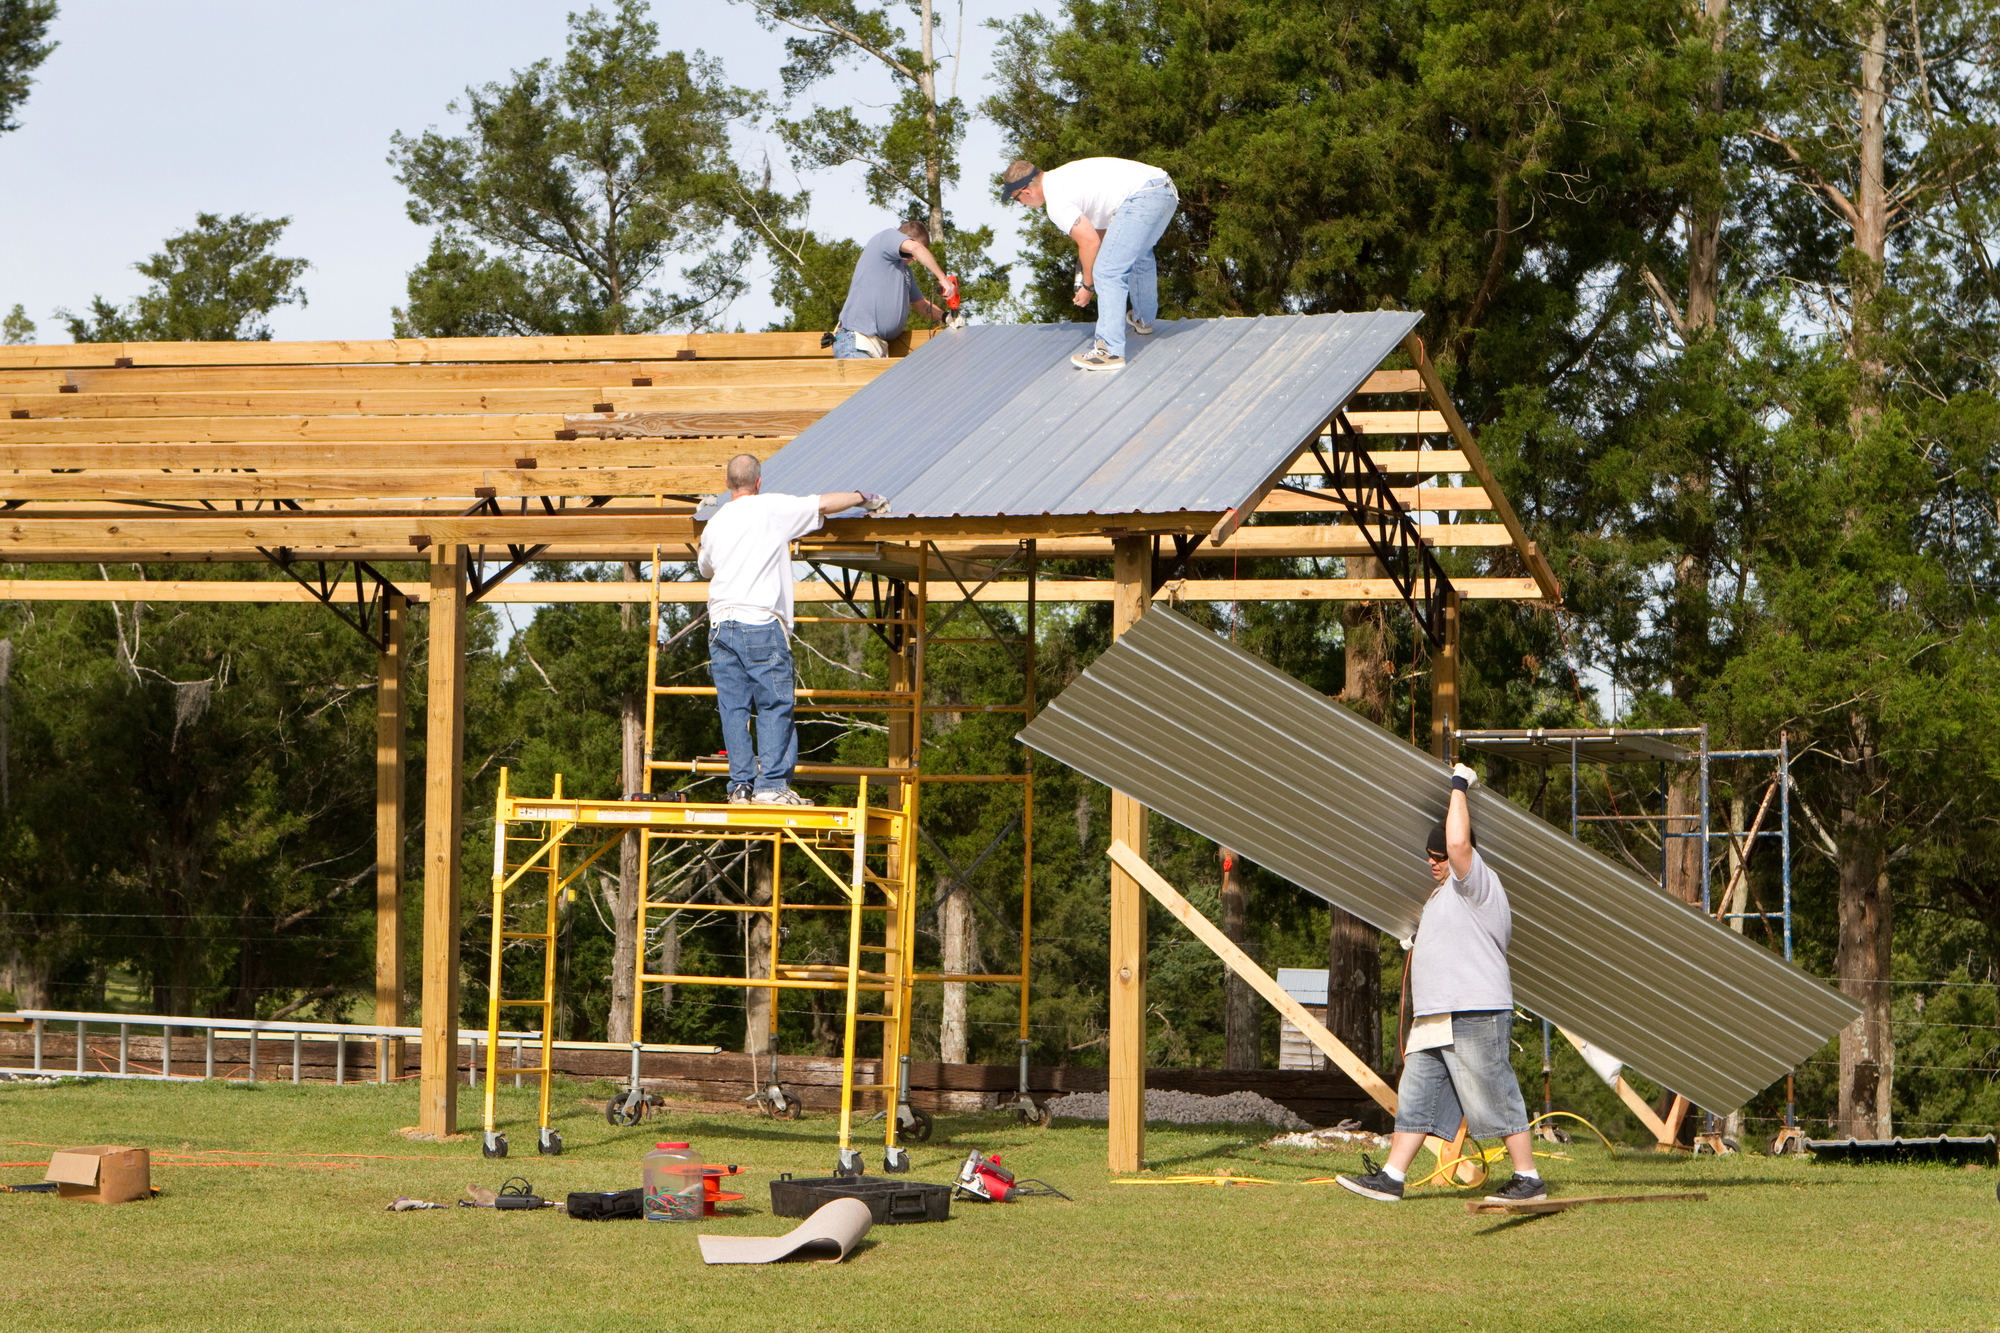 Cost: Perhaps The Most Important Benefit Of Pole Barn Kits Is The Cost.  Pole Barns Can Often Be Put Together With Basic Construction Knowledge,  Offering The ...